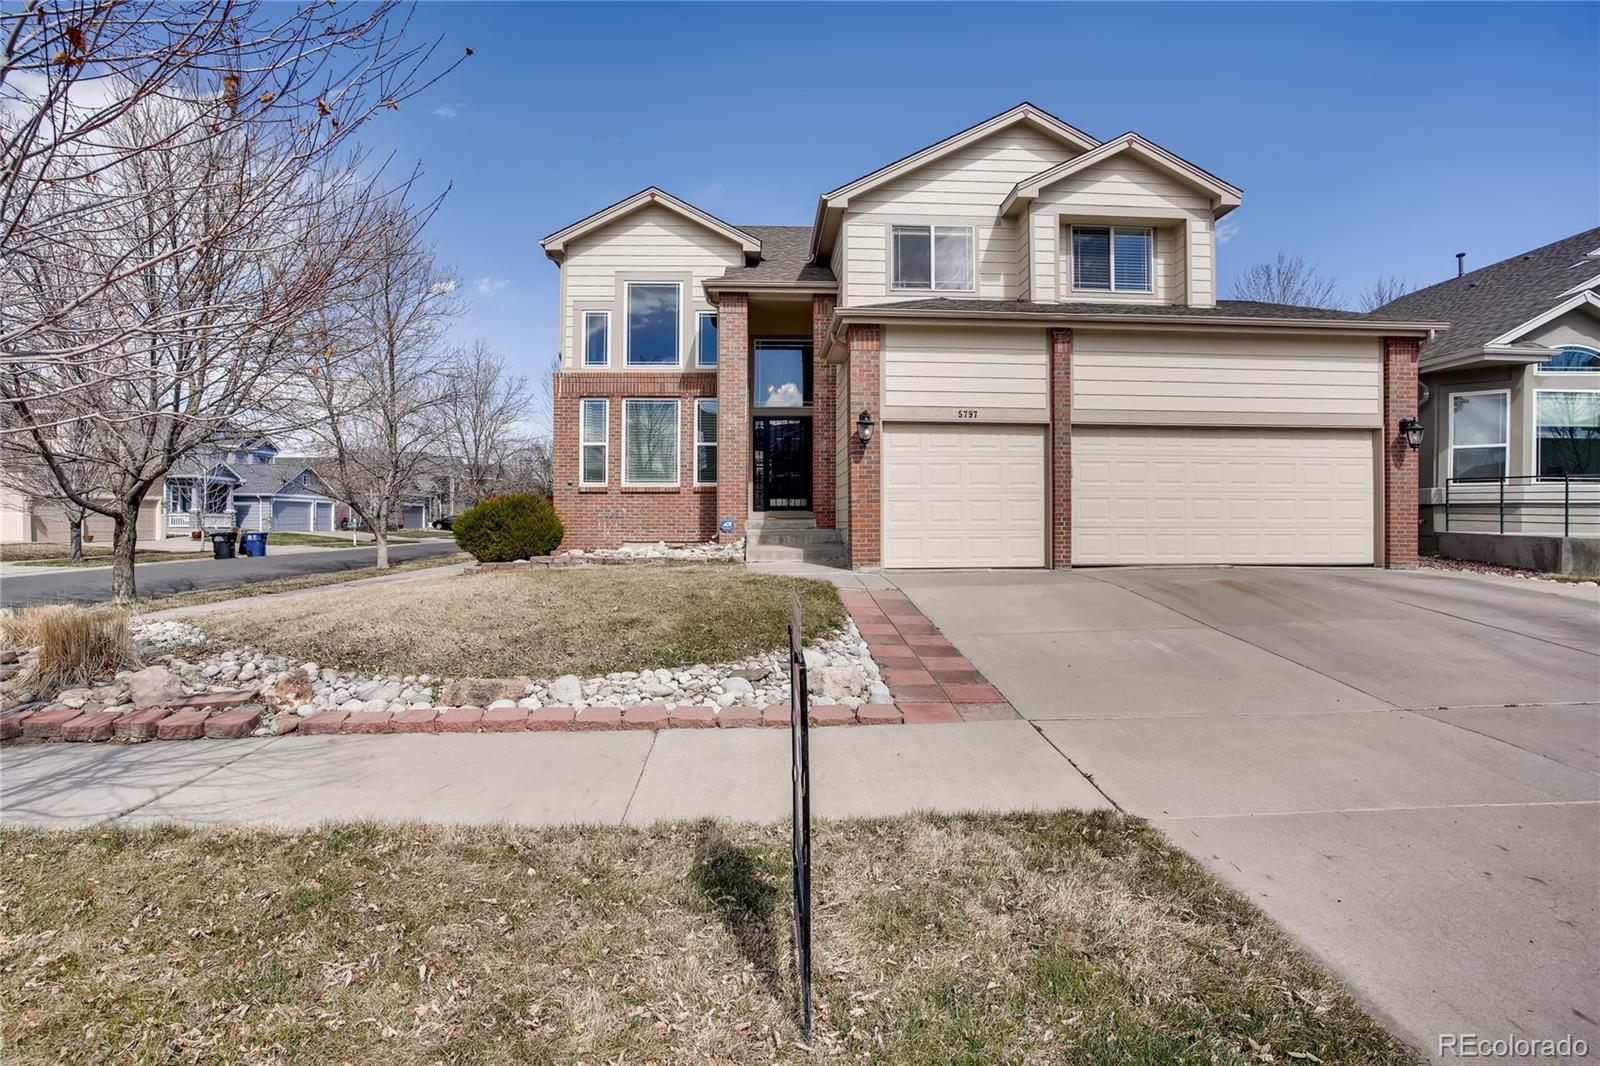 MLS# 6360296 - 5797 W Alamo Drive, Littleton, CO 80123